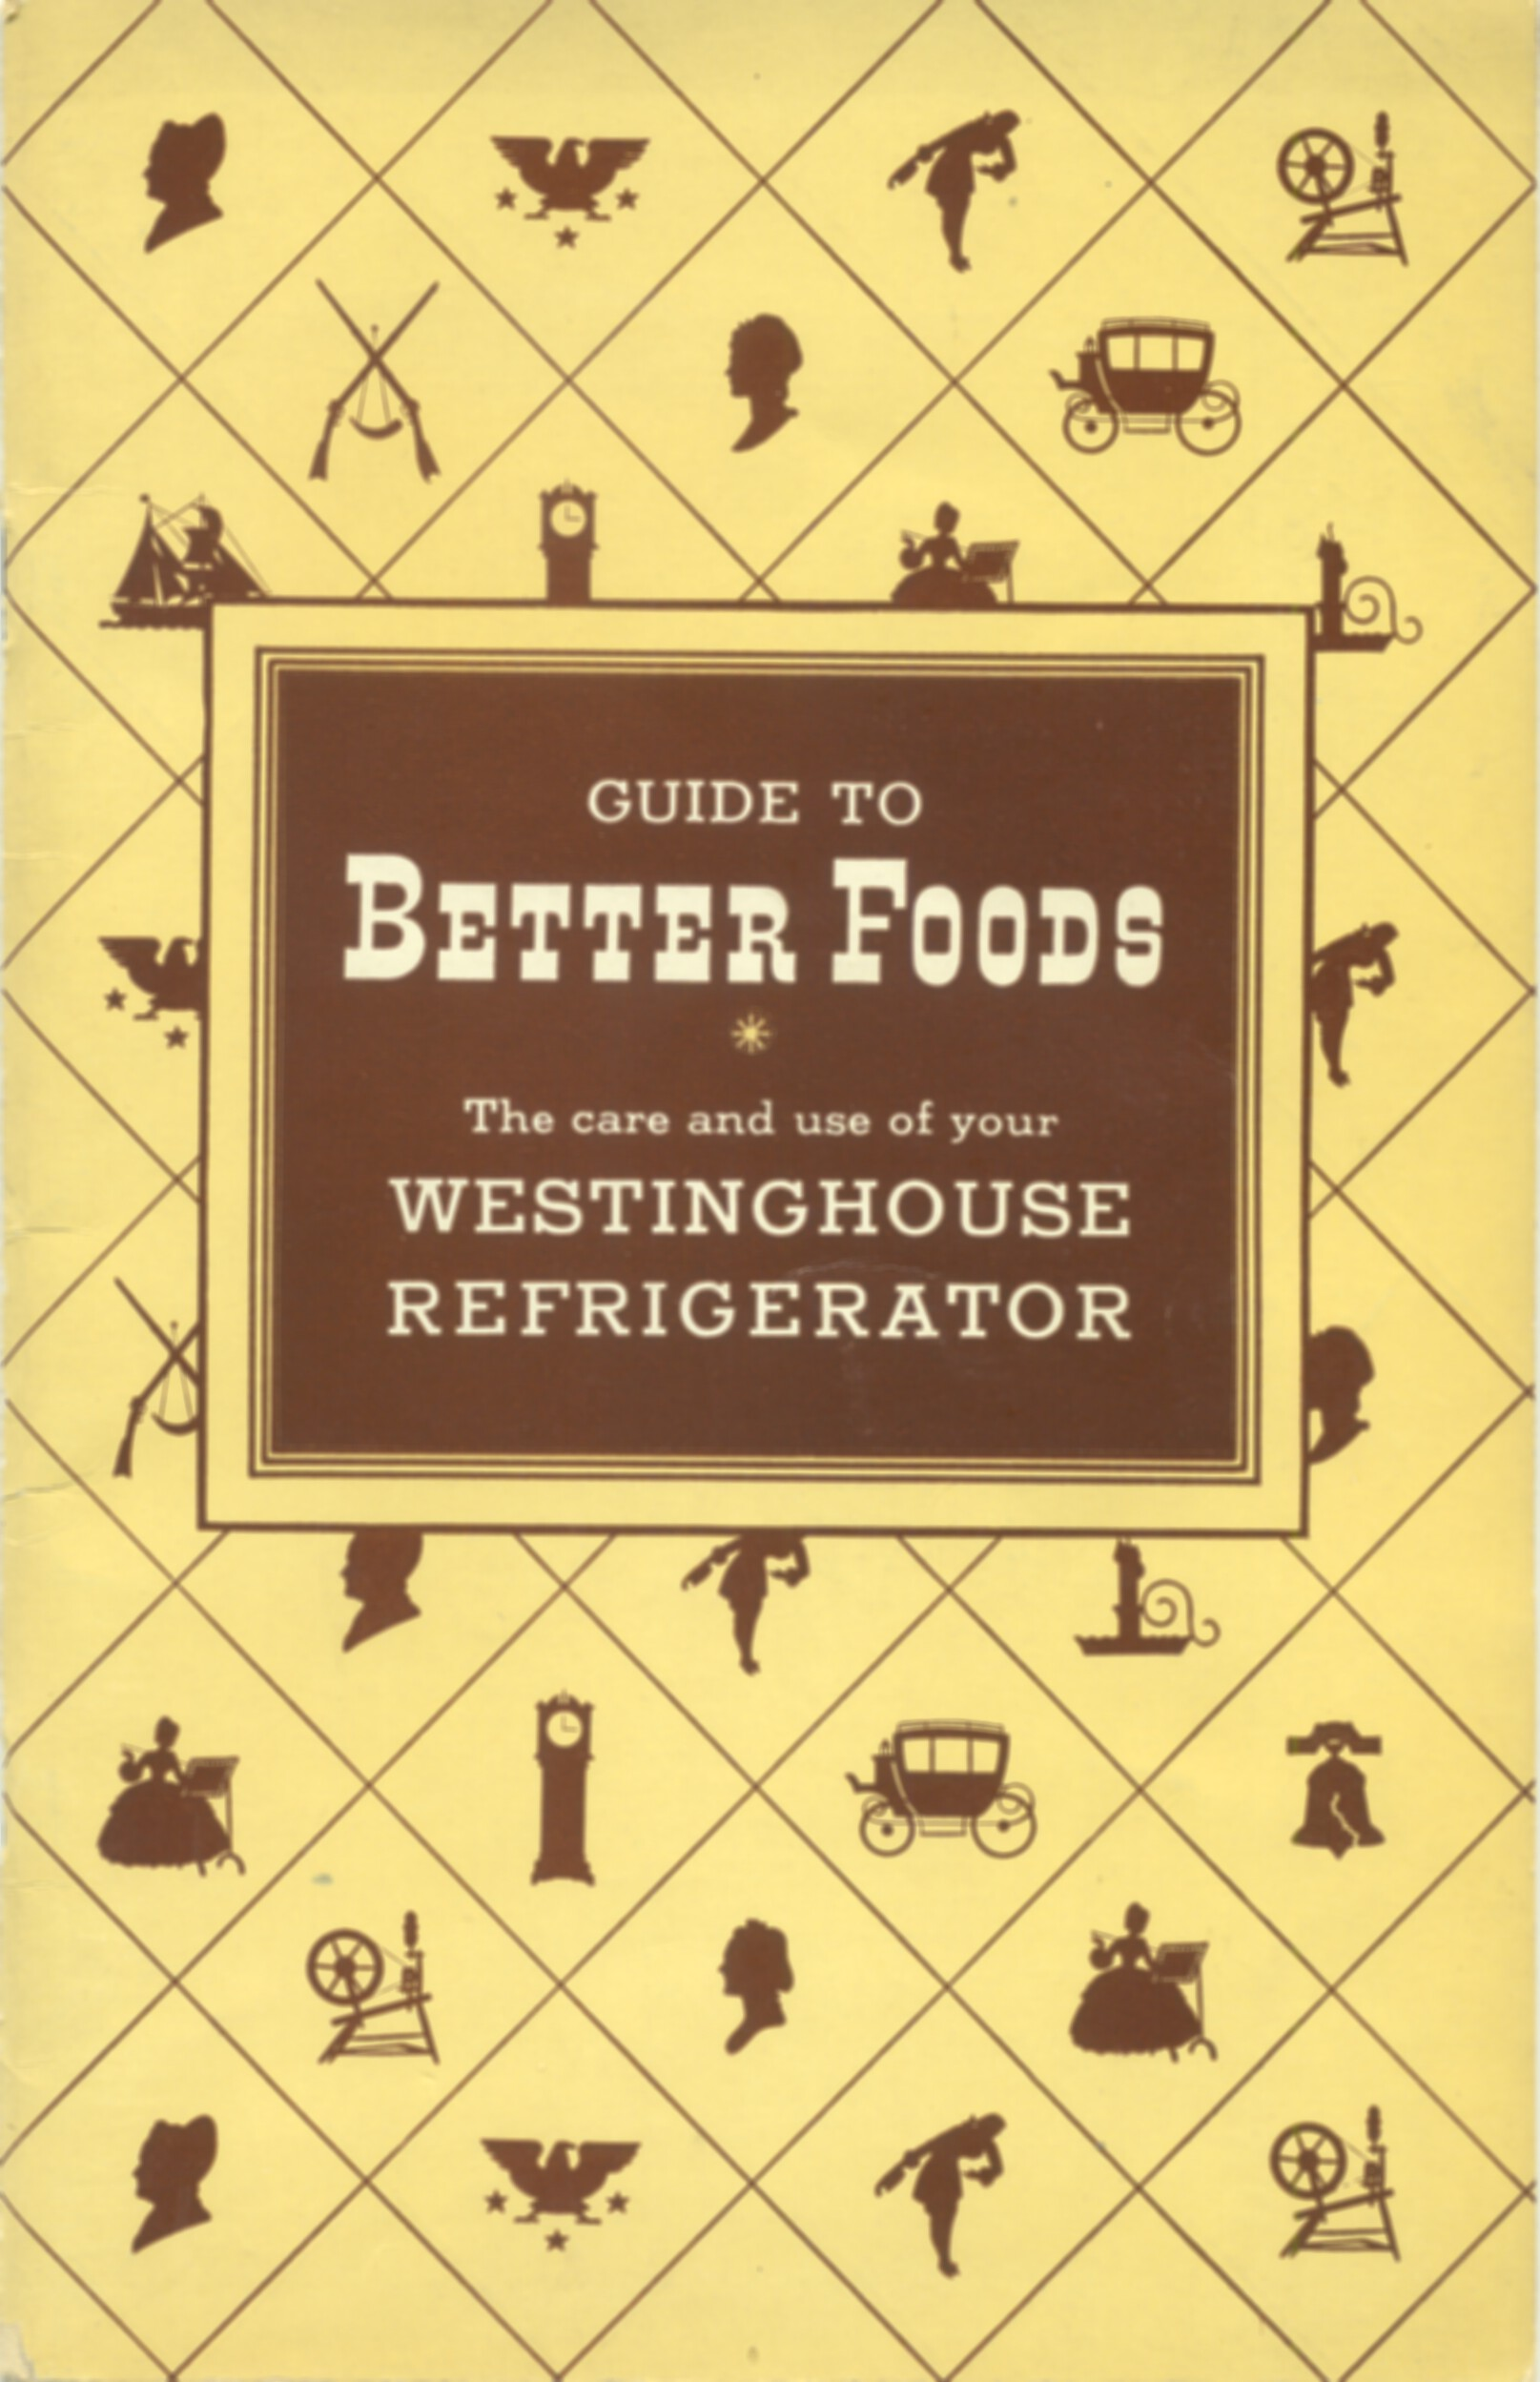 Guide to Better Foods ... undated care and use refrigerator booklet ... late 1940s or early 1950s